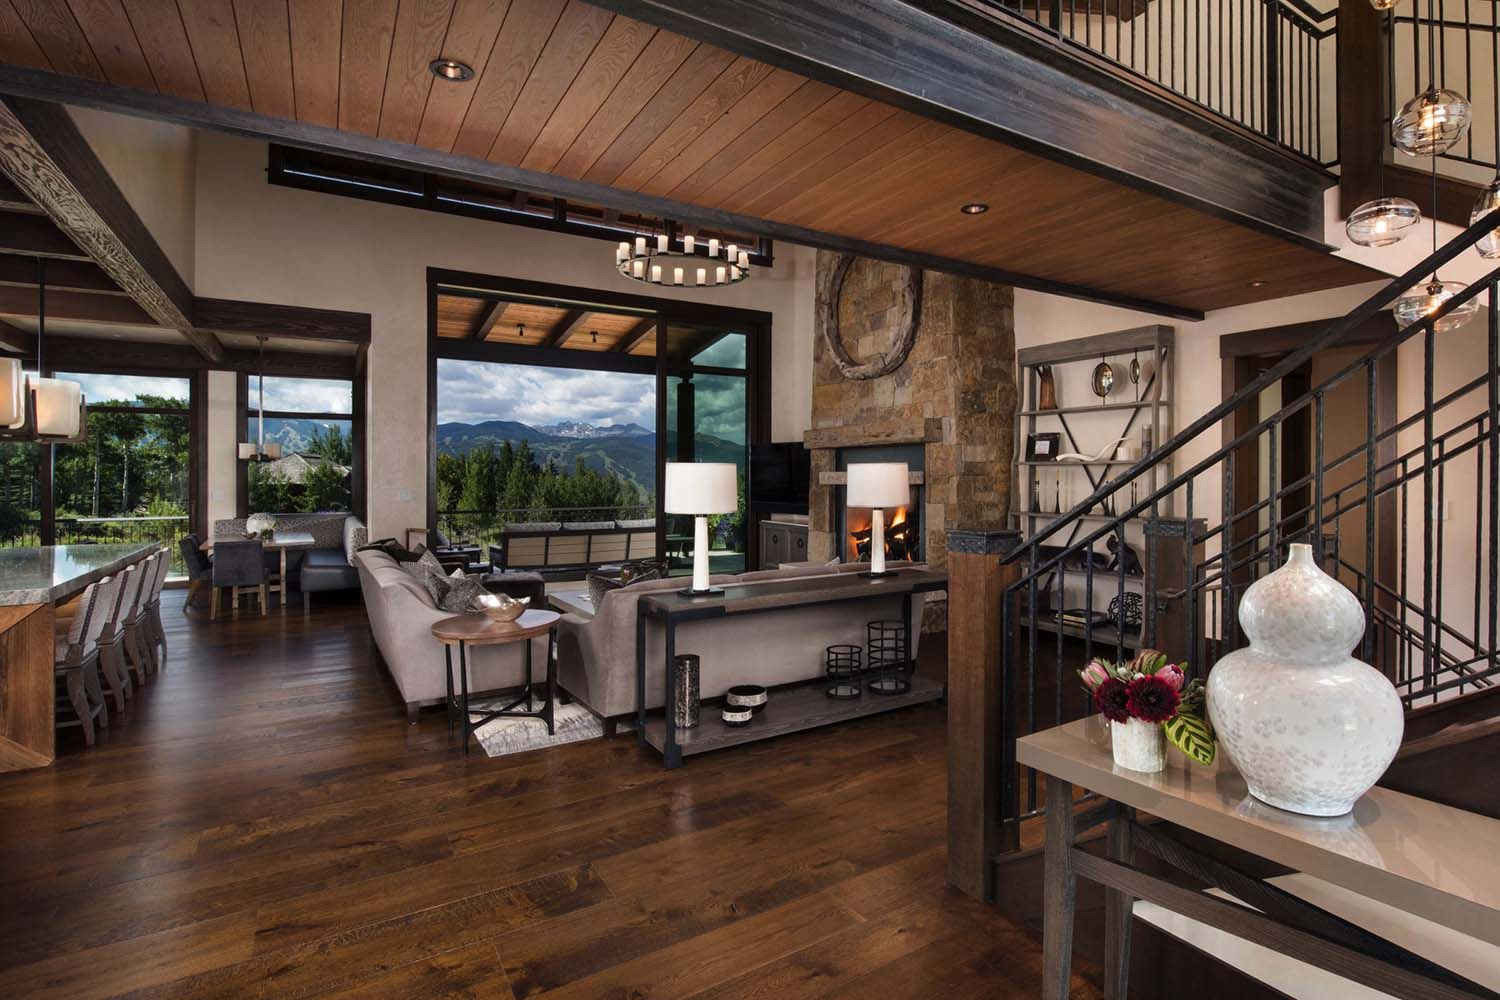 Contemporary Mountain Retreat In Colorado Infused With Warmth